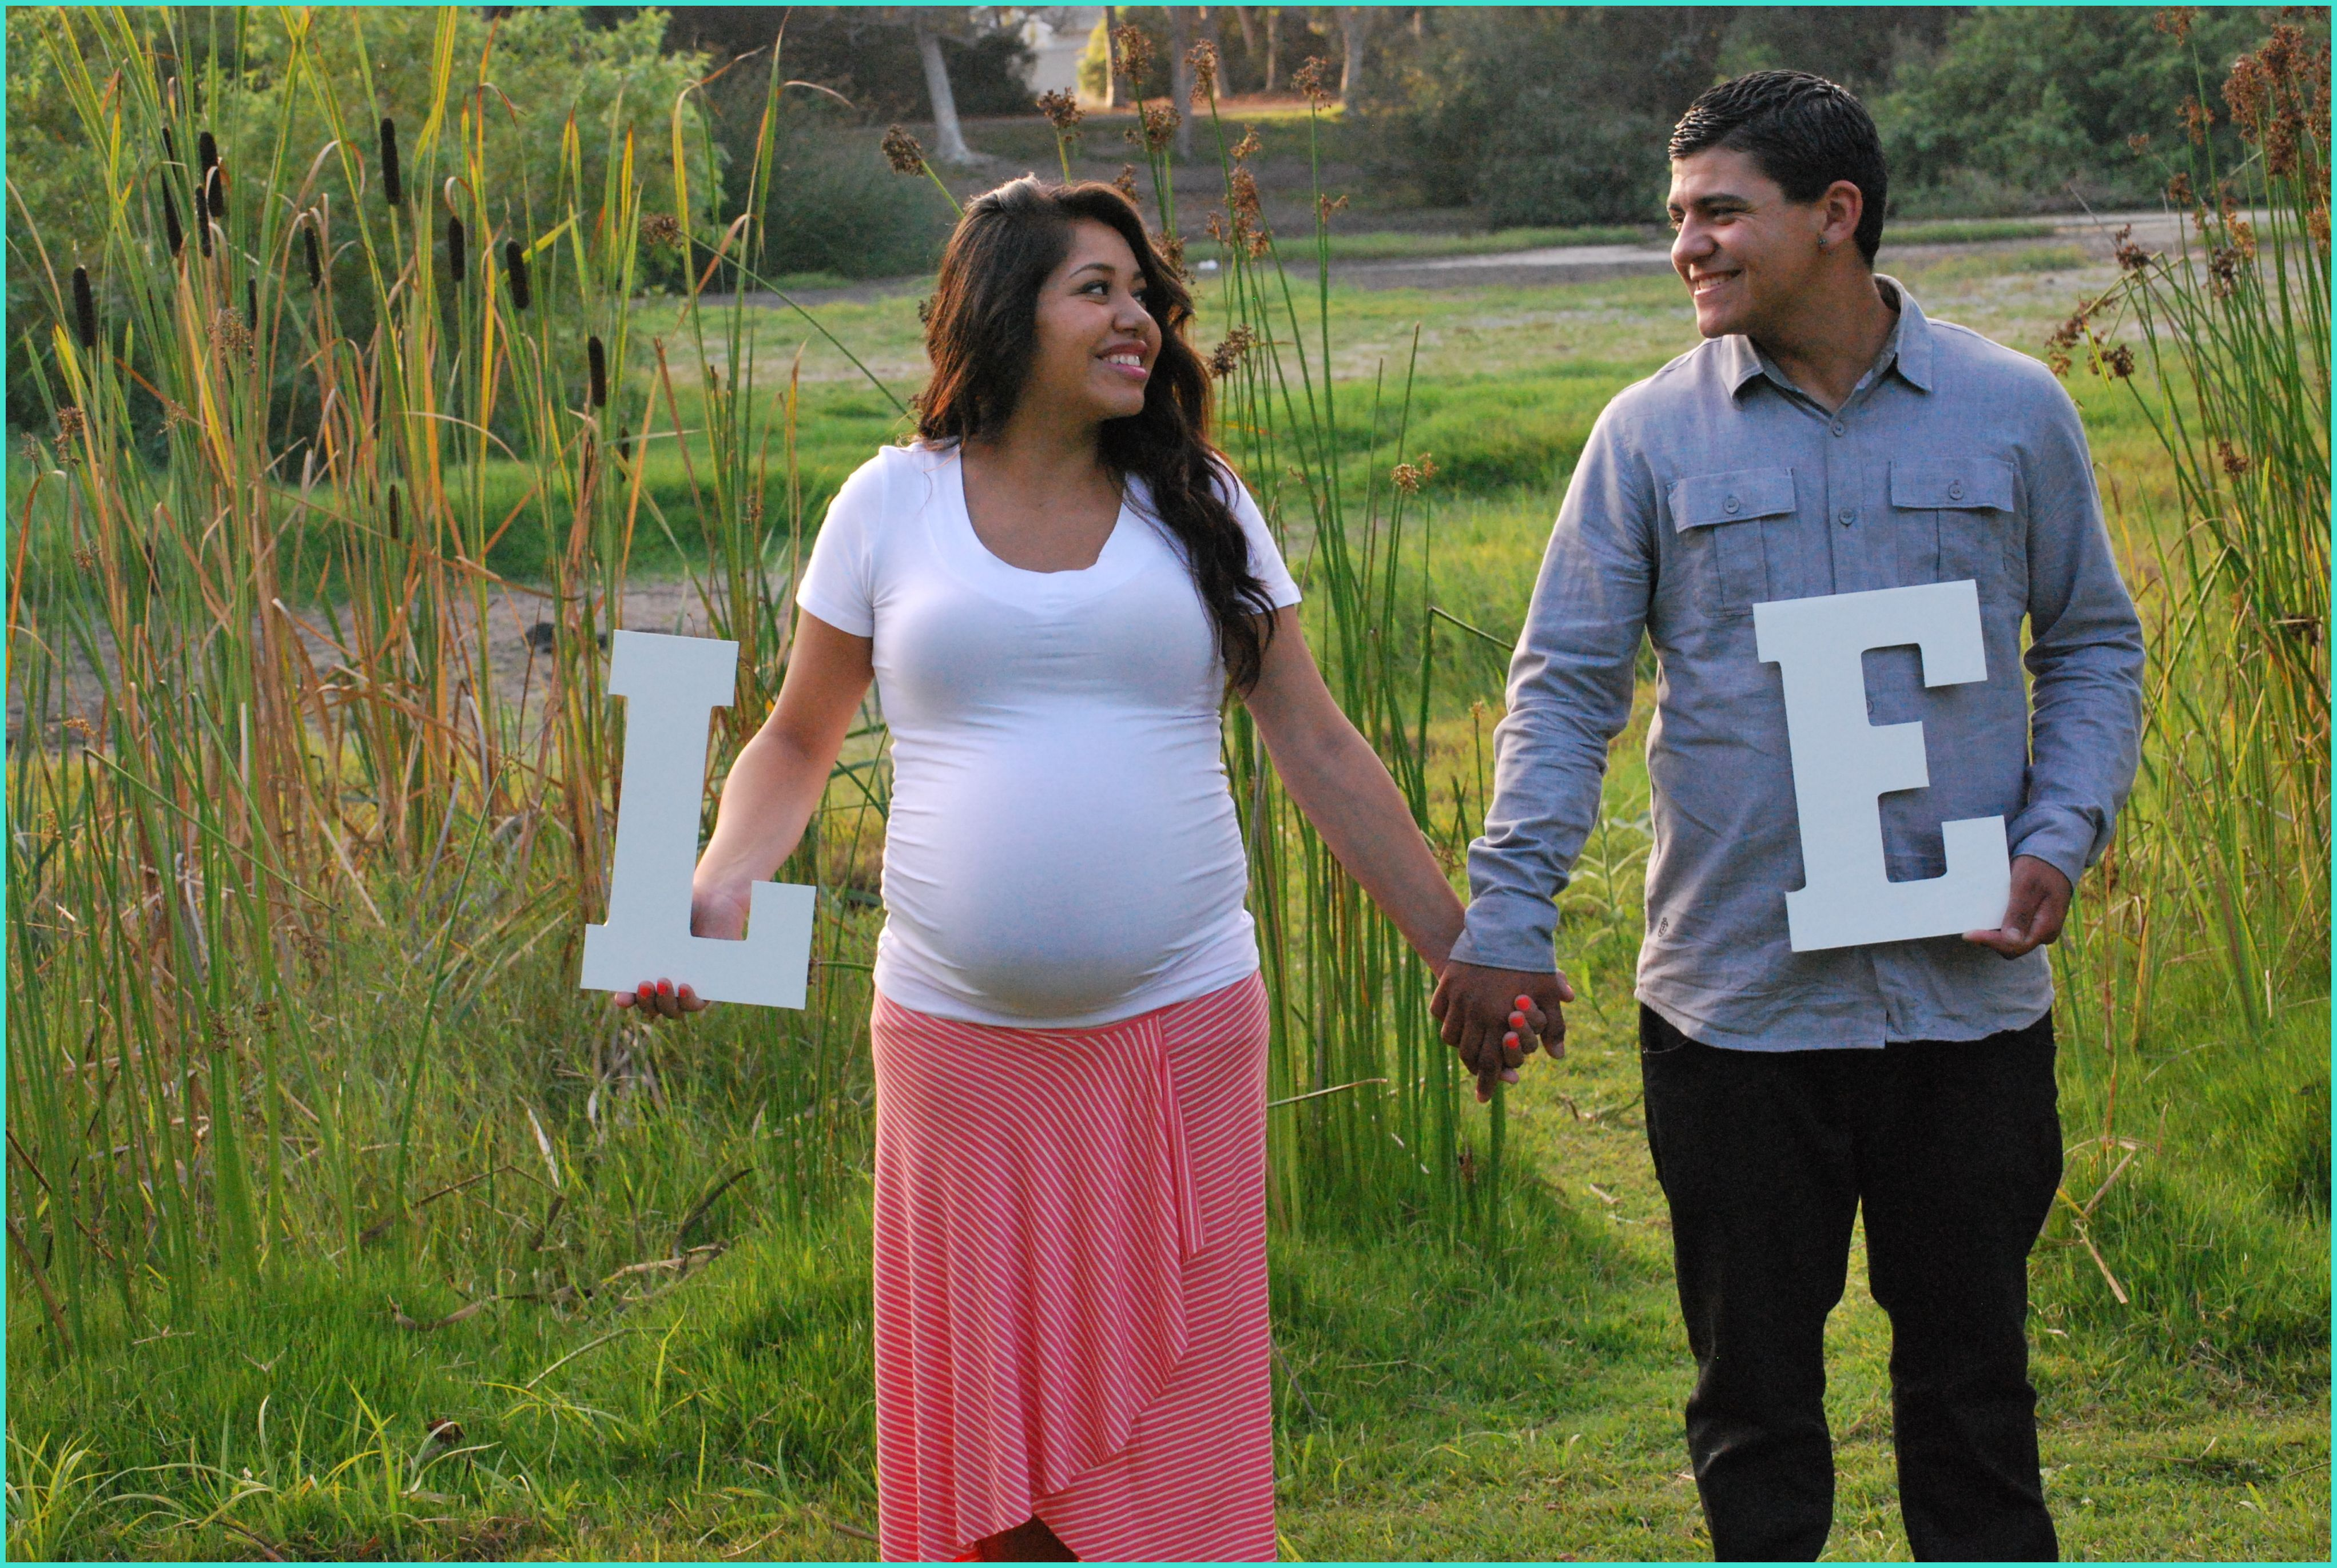 Getting Prepared With Photo Birth Announcements